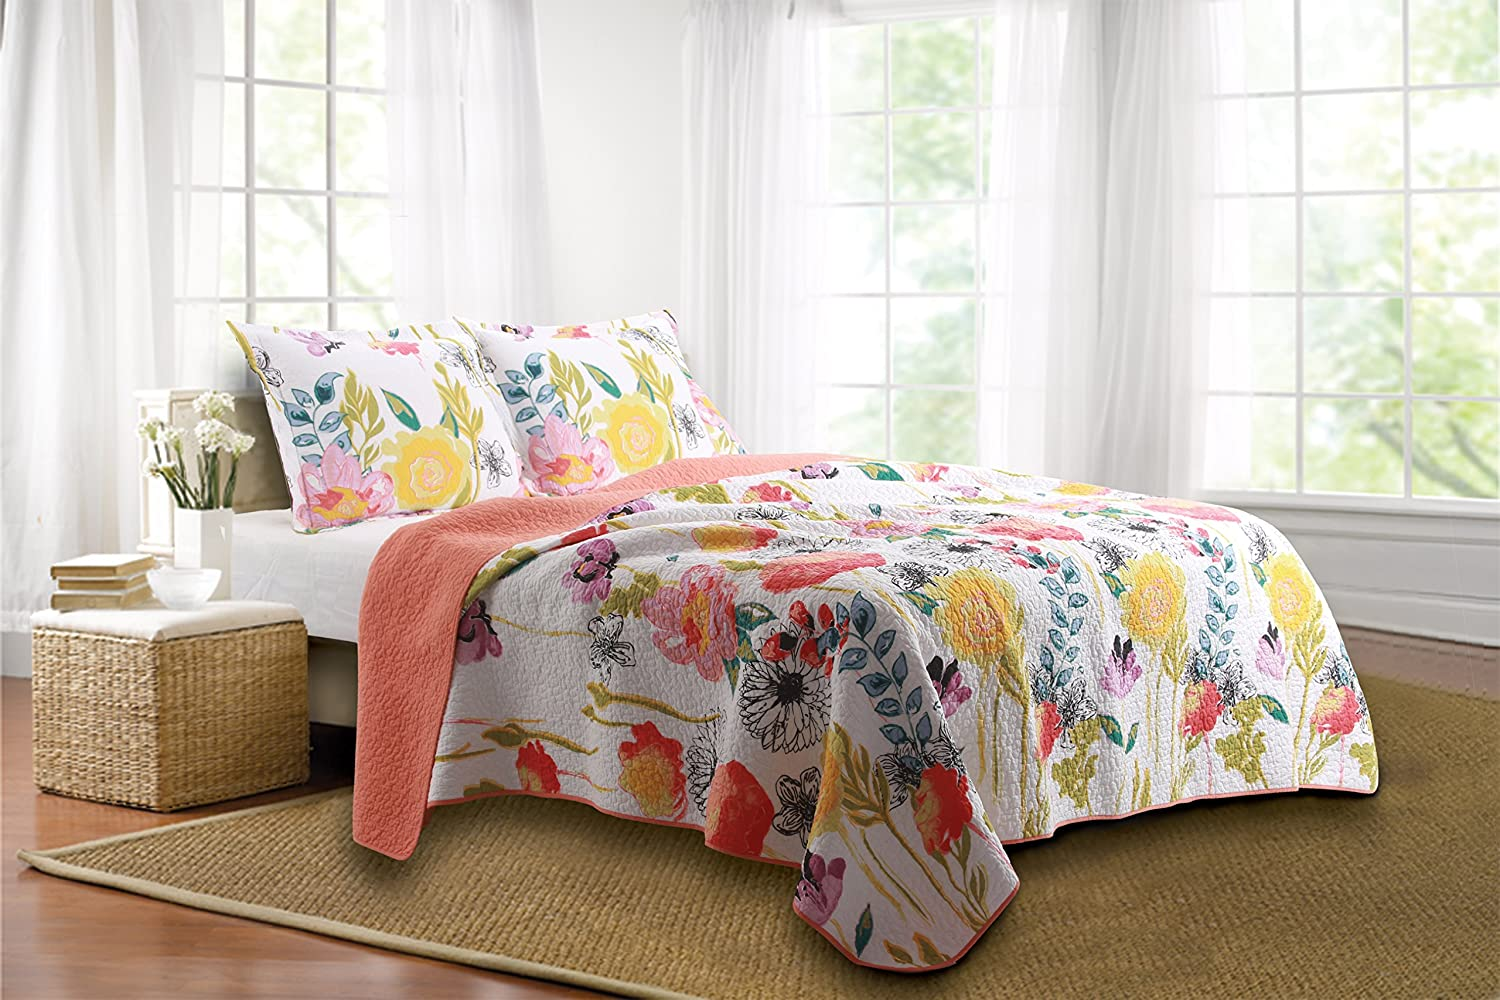 $96.51(was $187.19) Greenland Home 3-Piece Watercolor Dream Quilt Set (King Size)